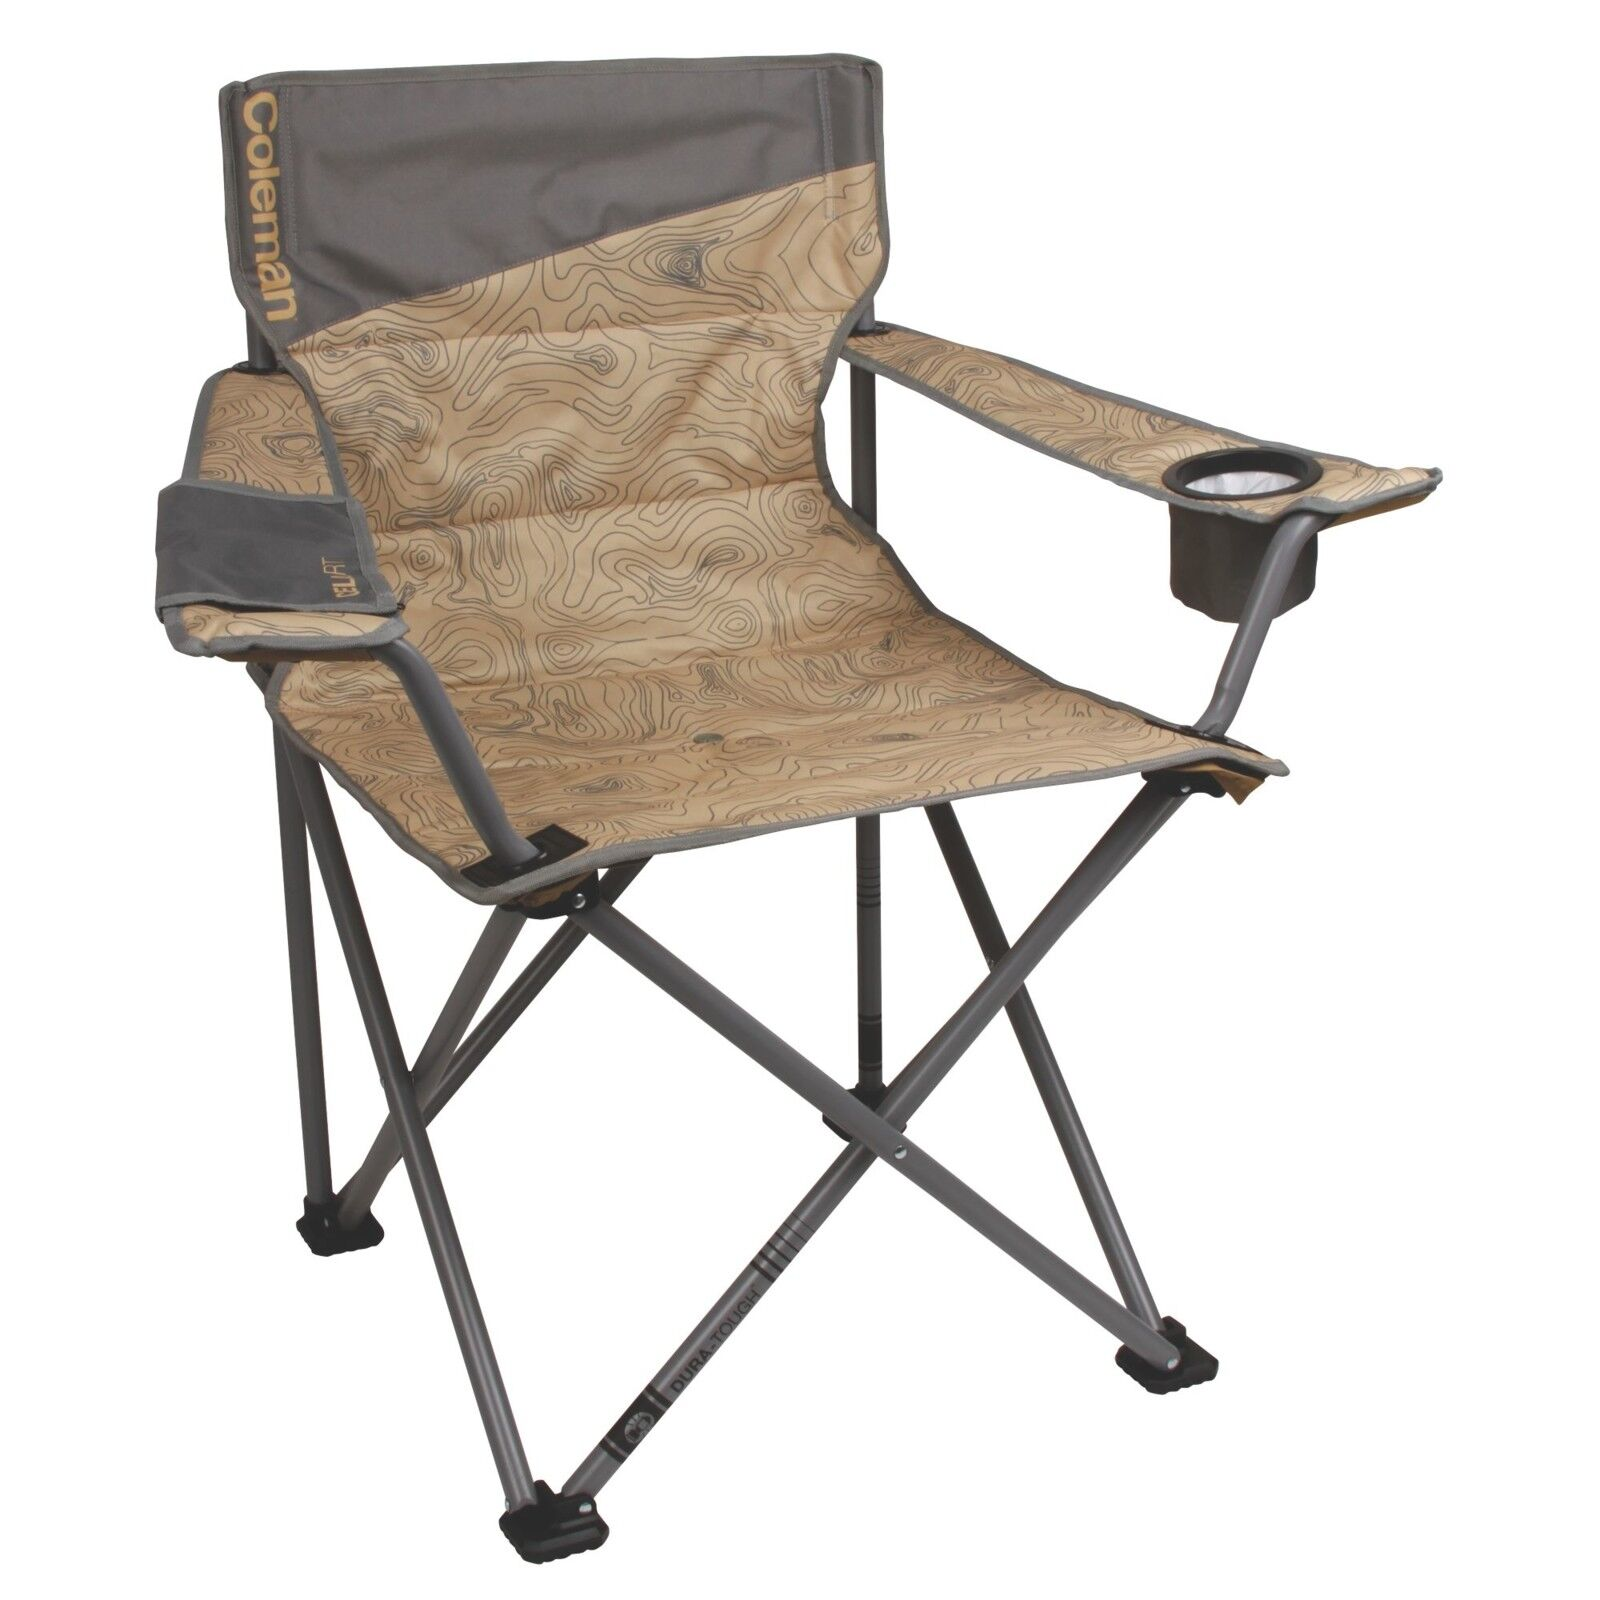 Oversized Quad Camping Chair Portable Outdoor Folding  Seat with Phone Sleeve  supply quality product